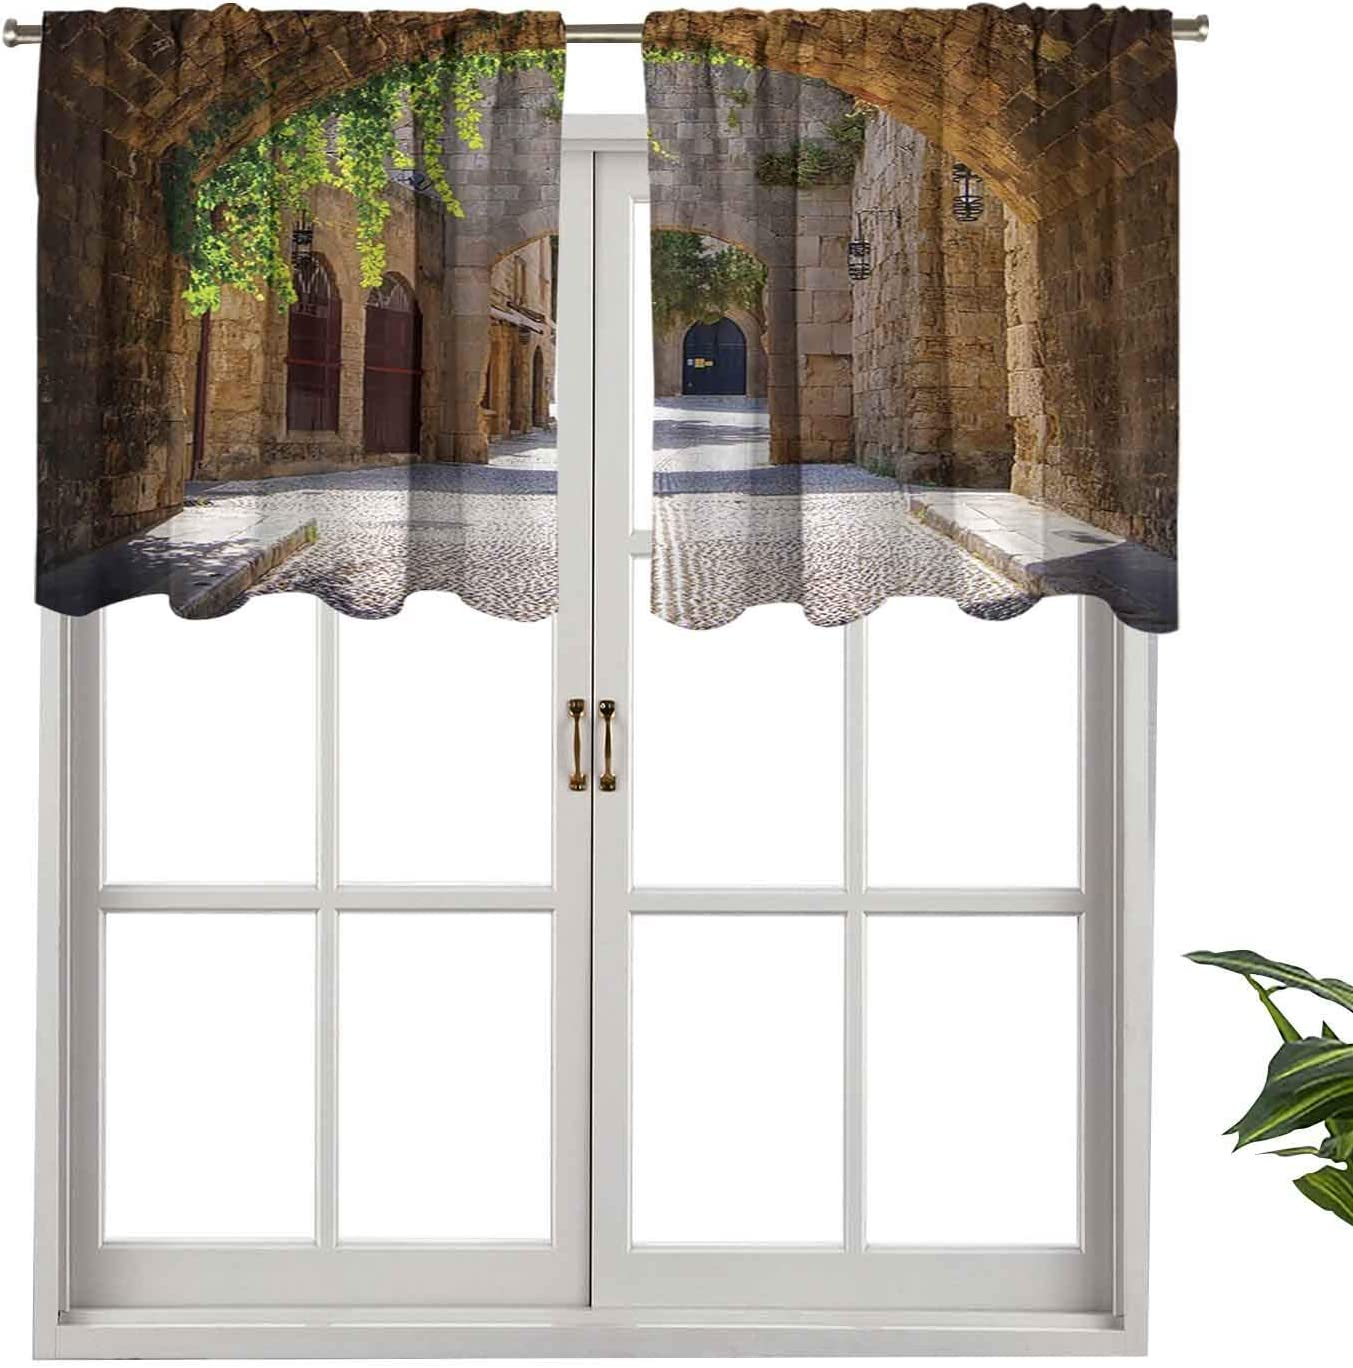 """Hiiiman Window Curtain Light Filtering Rod Pocket Valance Italian Street in Small Provincial Town of Tuscan Italy Europe, Set of 1, 54""""x18"""" for Bedroom, Kitchen Or Bathroom Windows"""